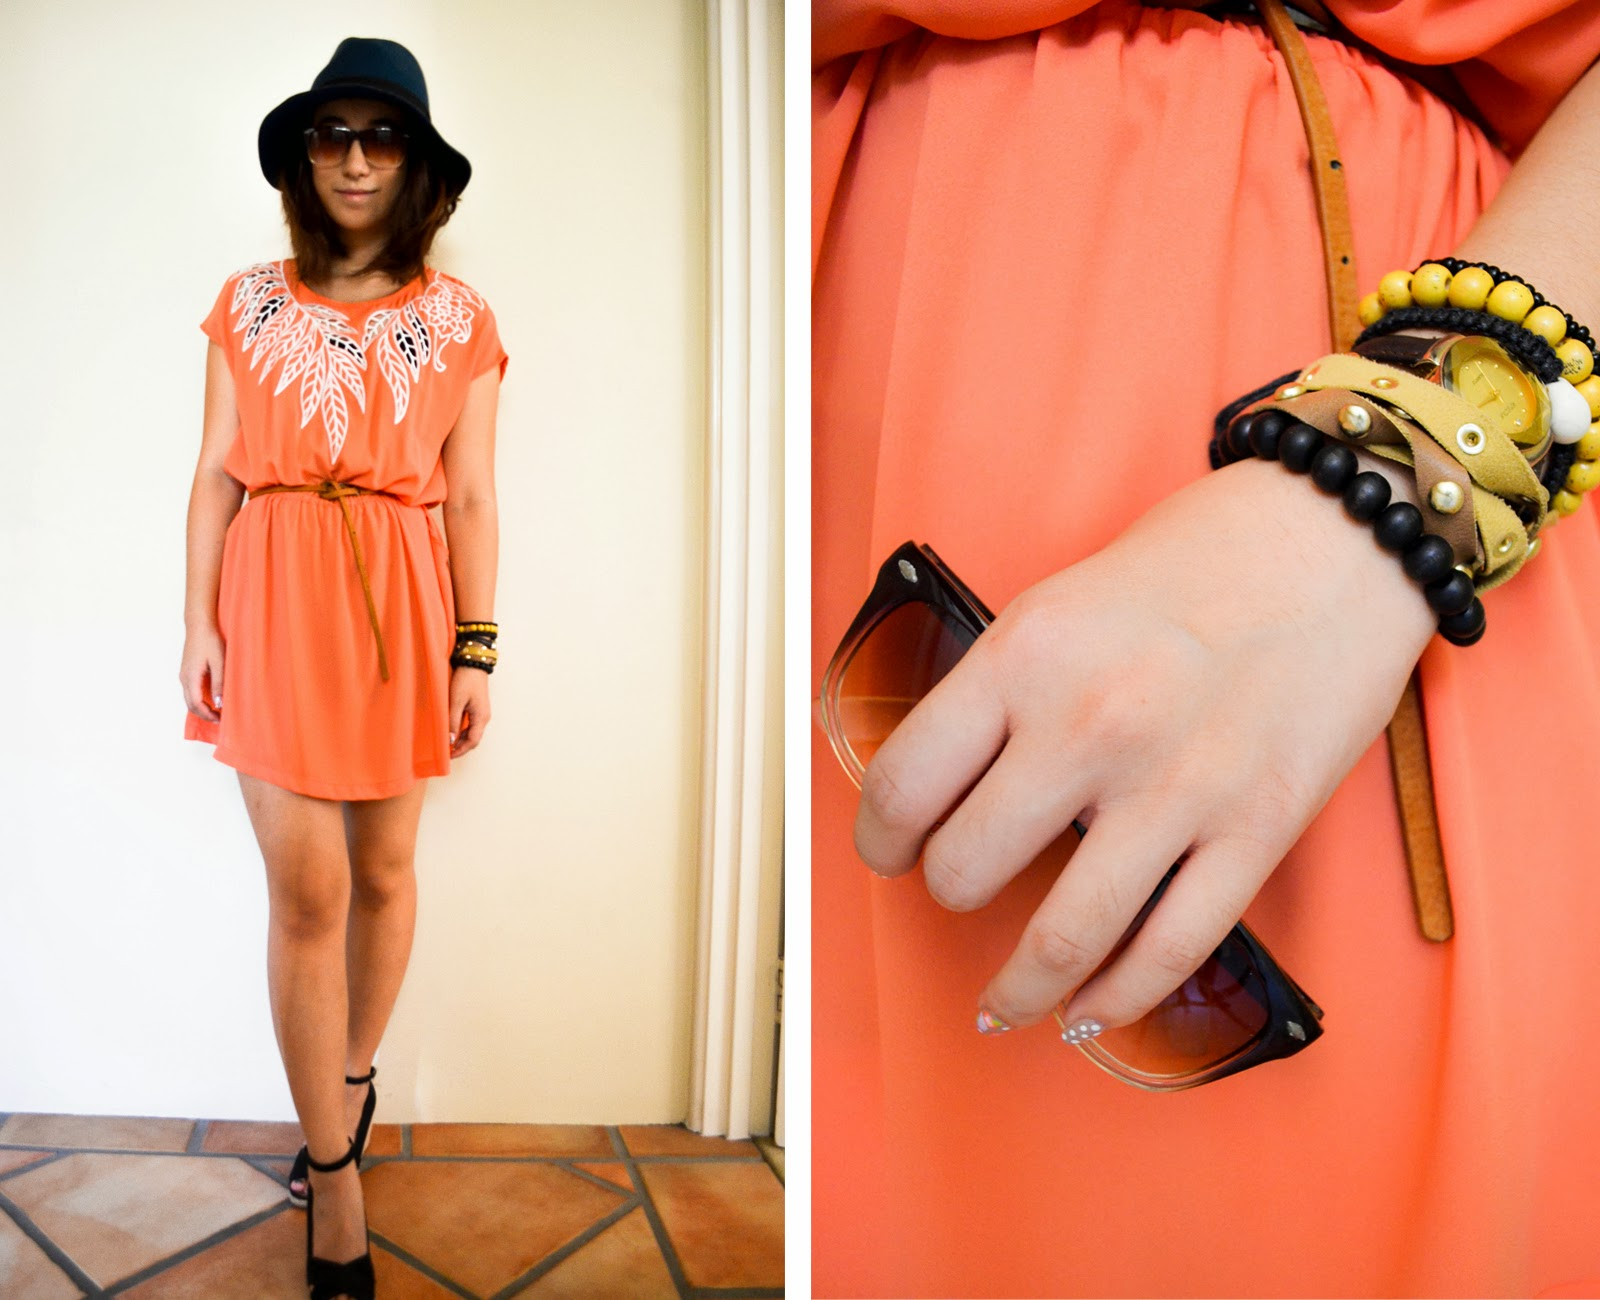 outfit inspiration looks fedora hat styling dress chiffon belt bracelet arm candy sunglasses summer heels